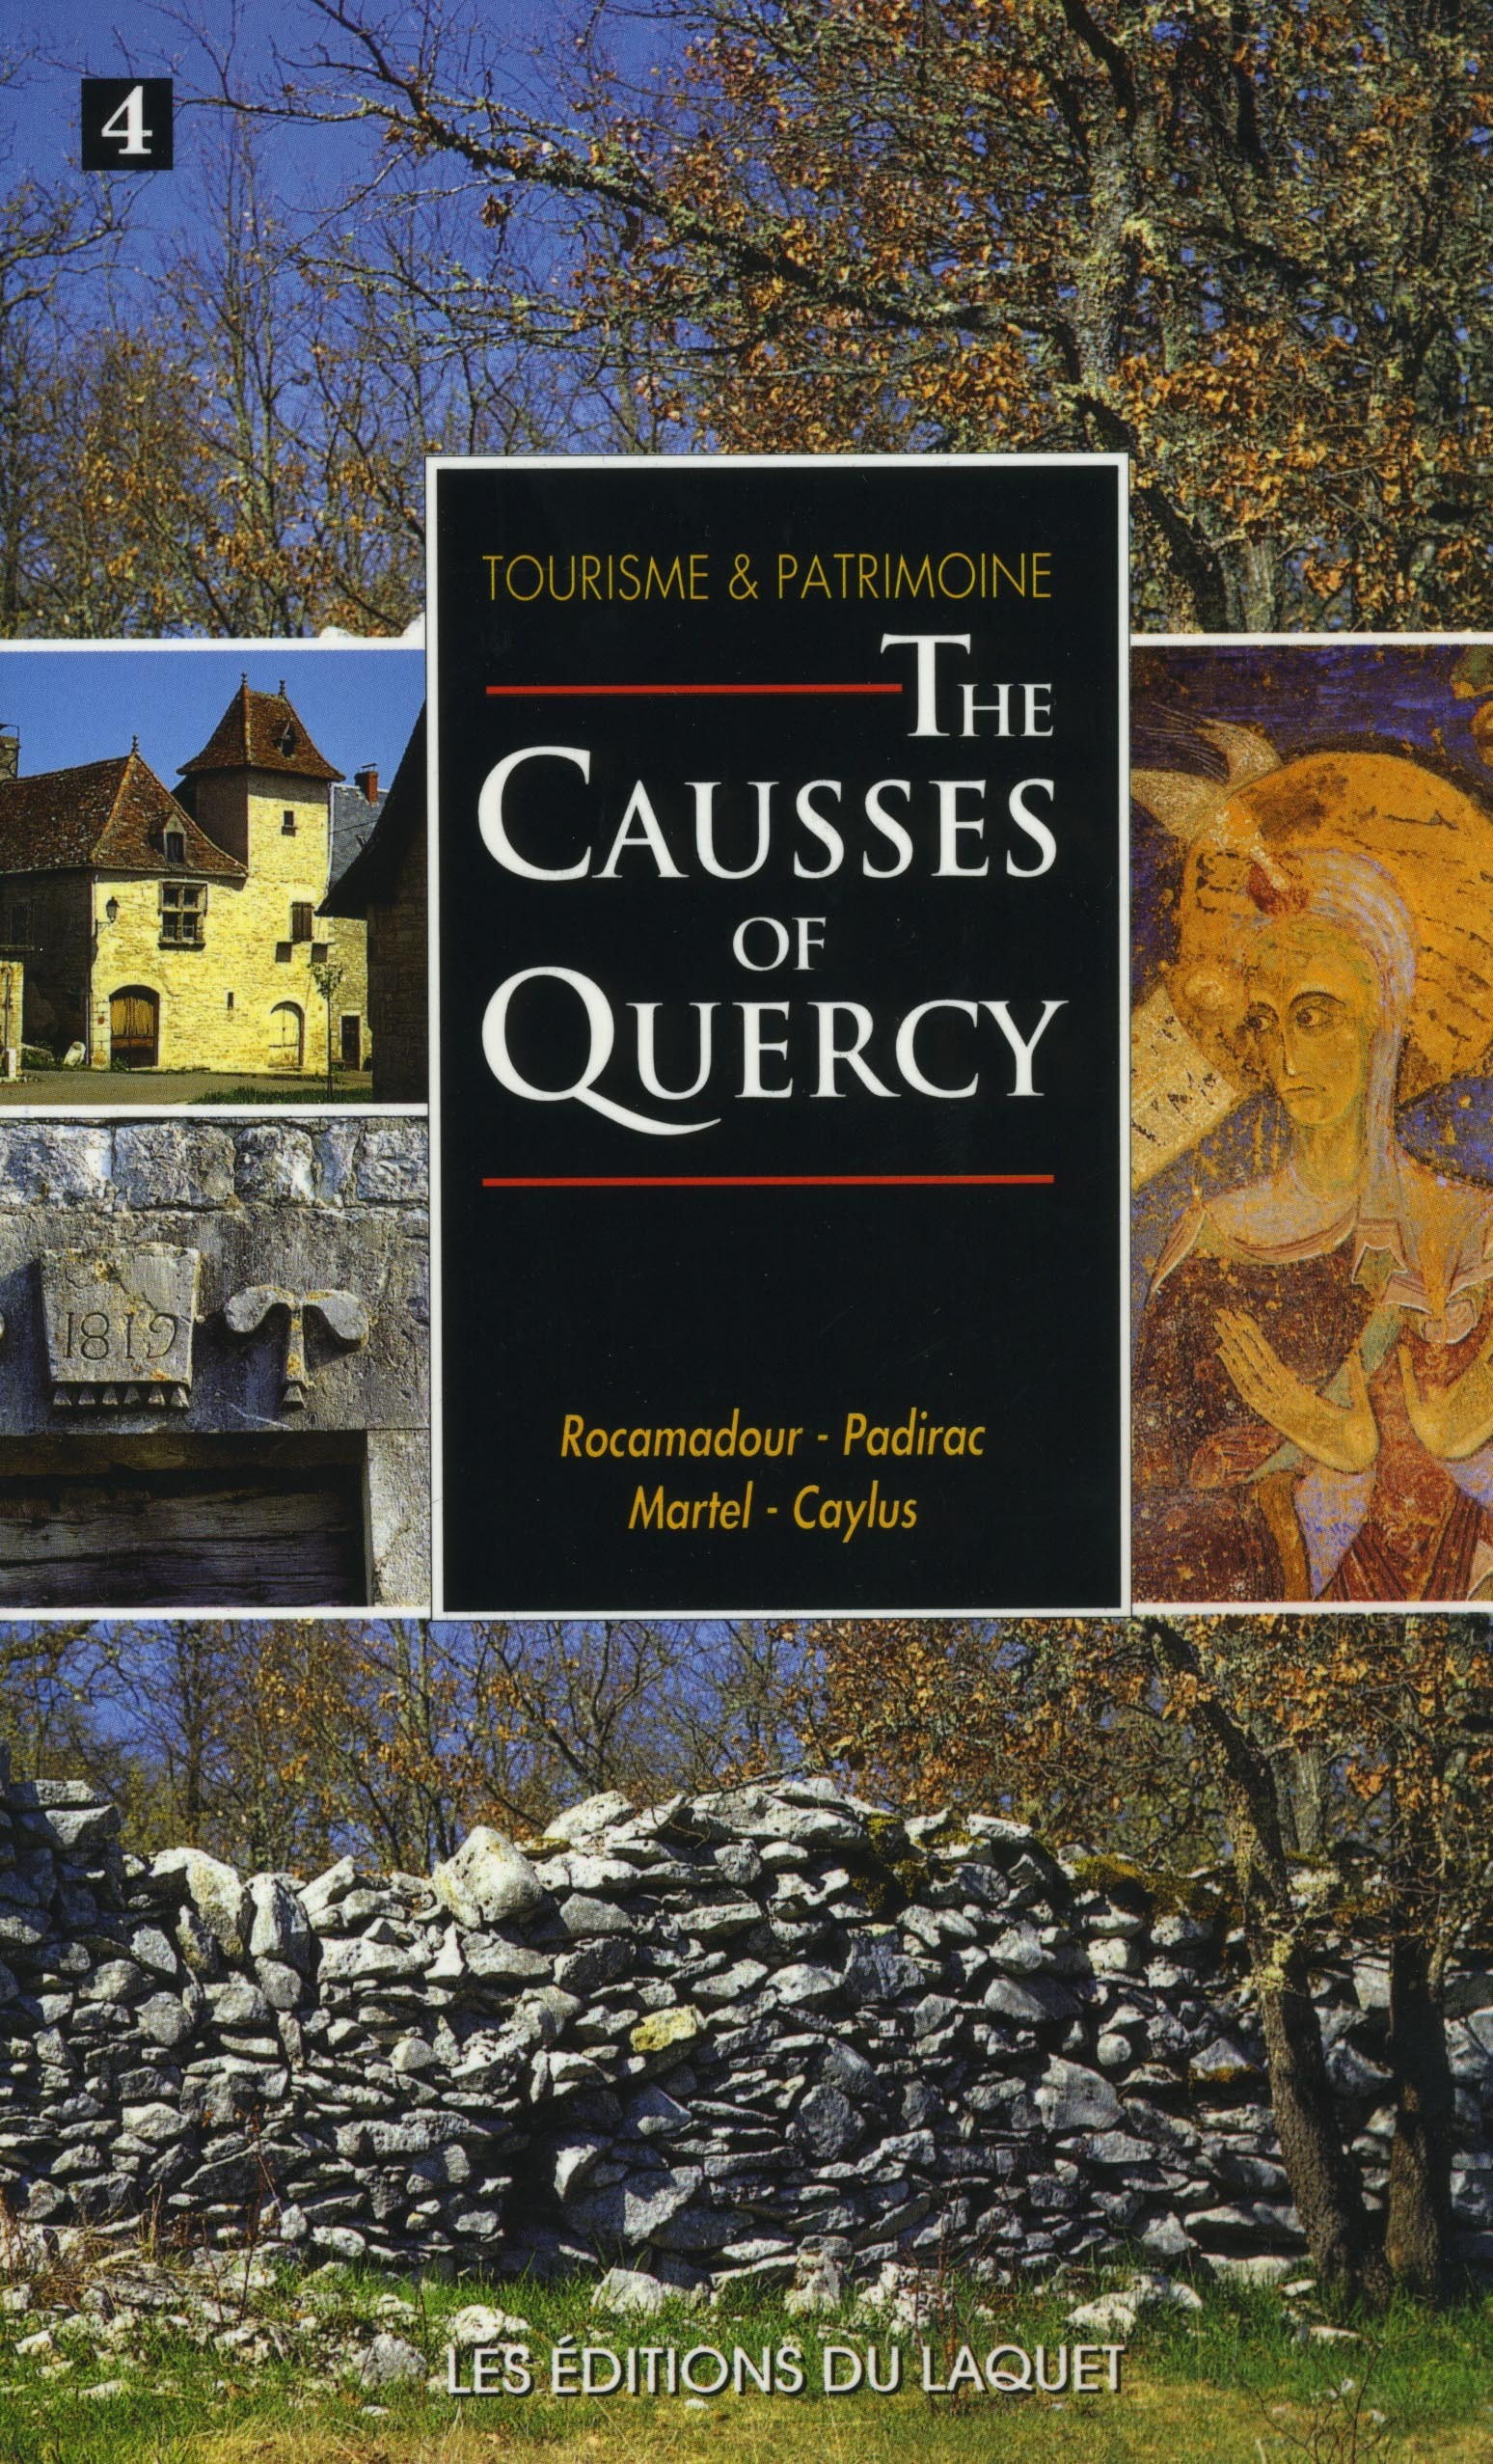 THE CAUSSES OF QUERCY